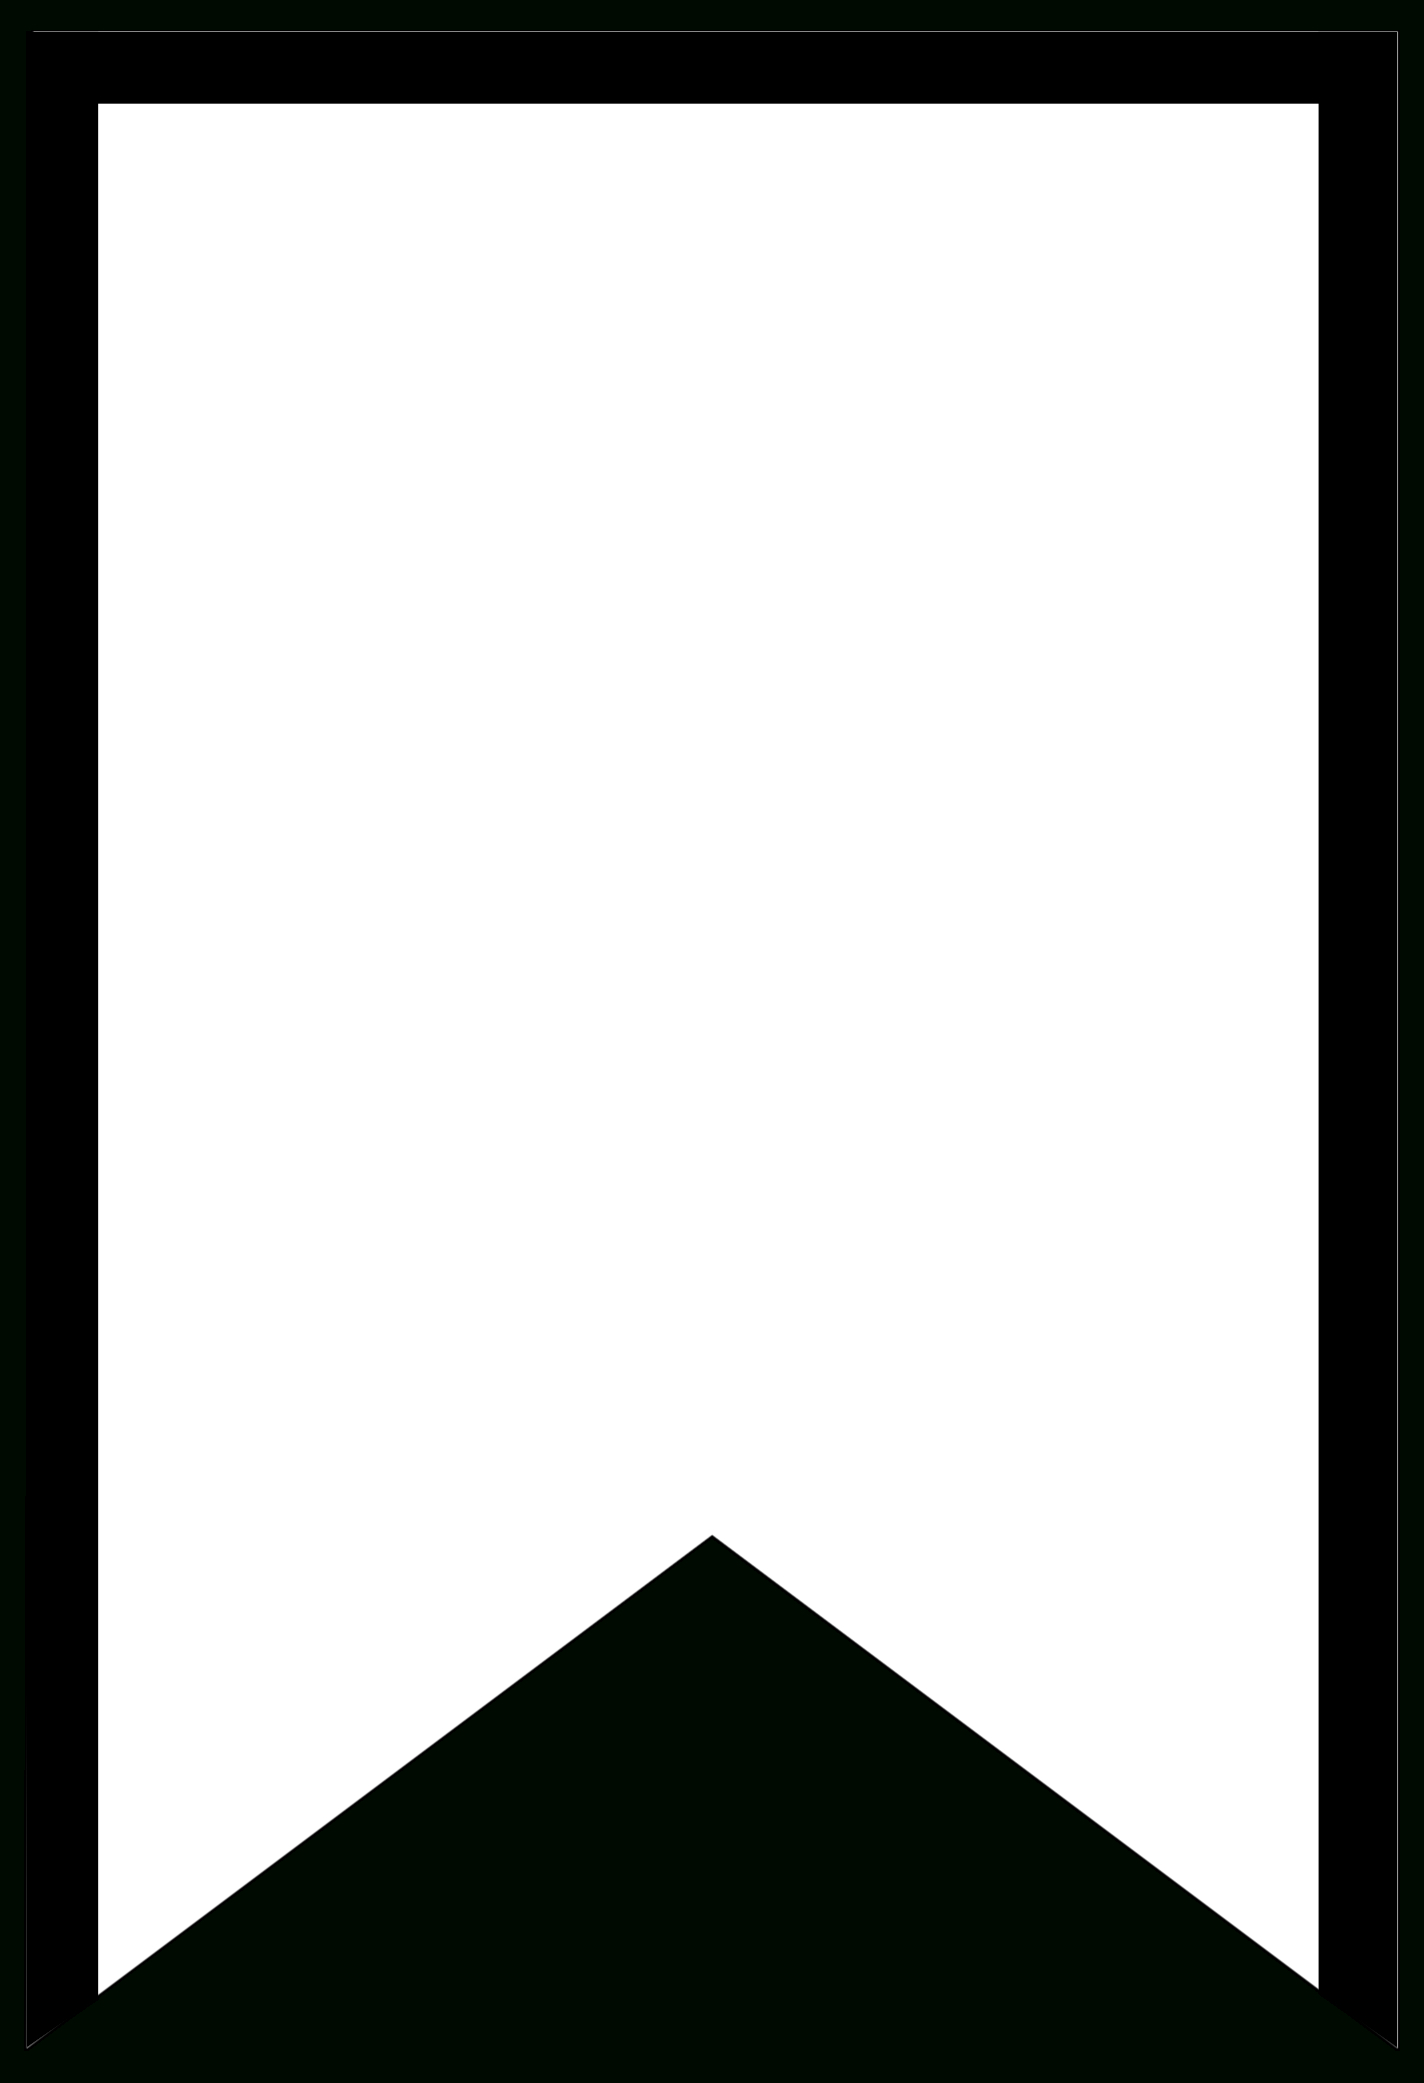 Free Printable Banner Templates {Blank Banners} - Paper Trail Design - Free Printable Blank Flag Template